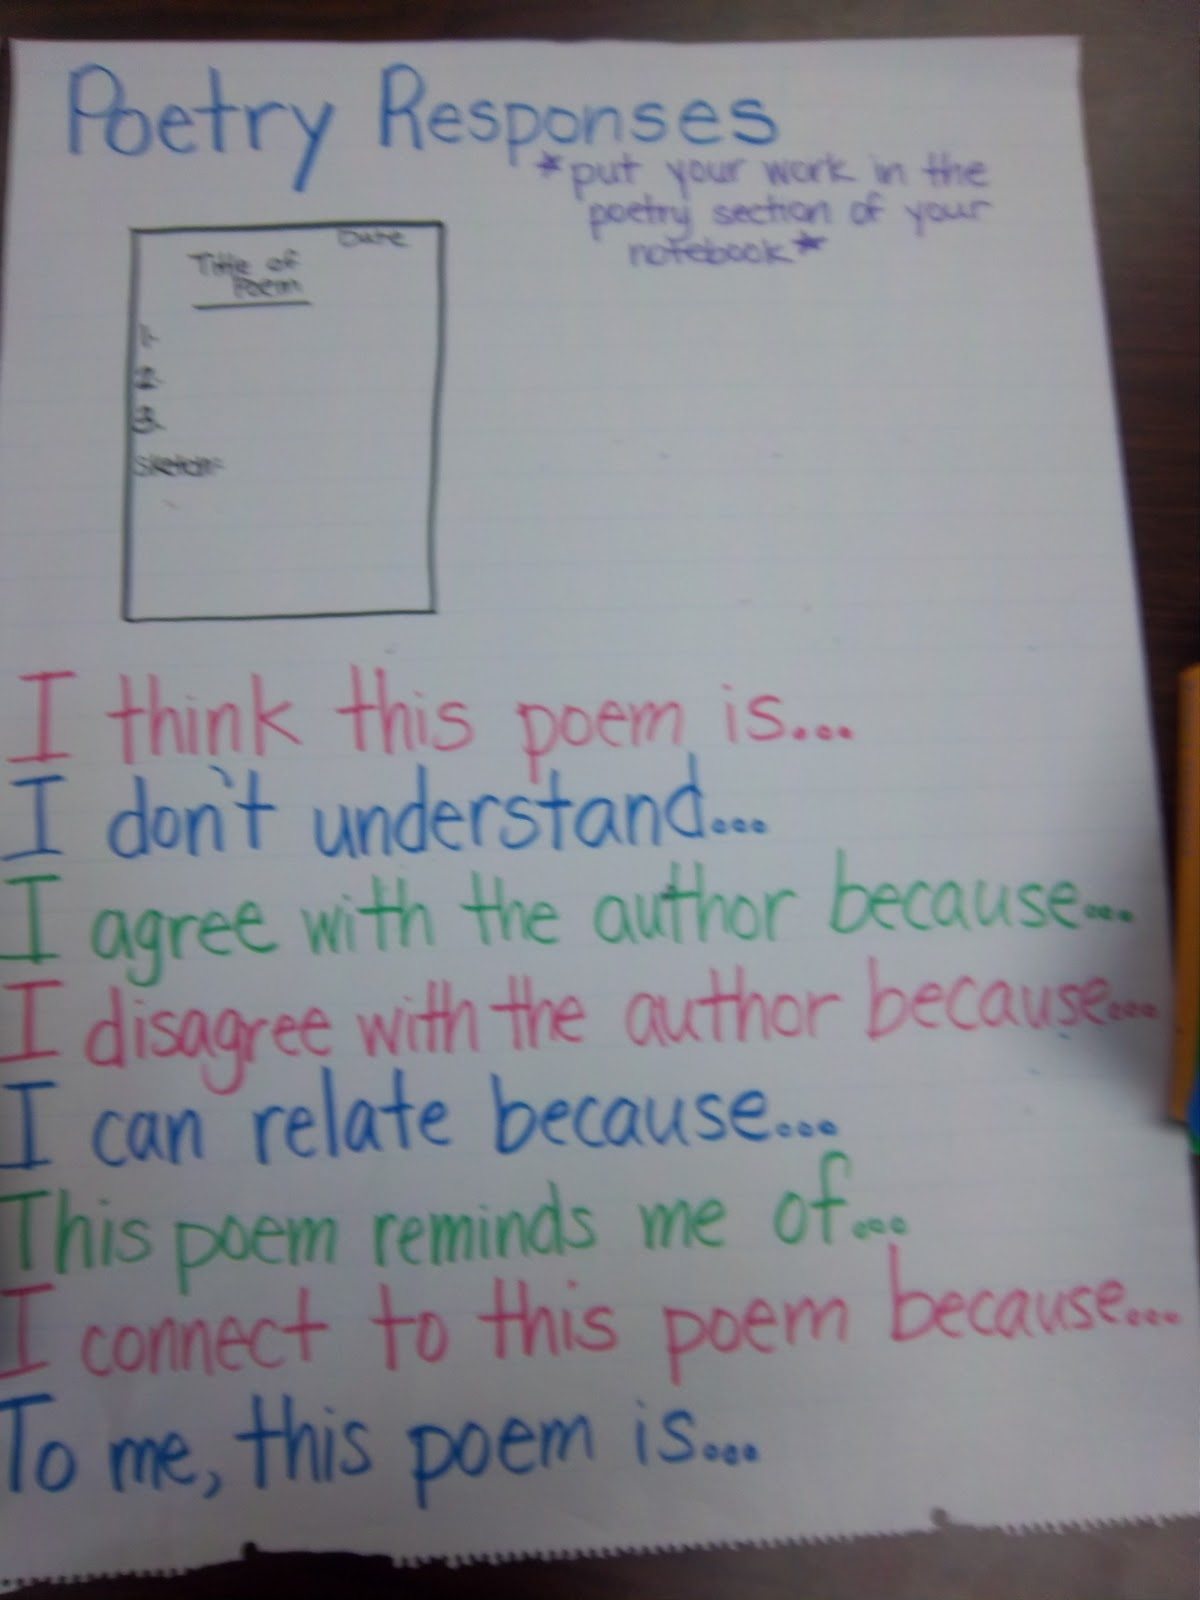 Response Poems | Examples of Response Poetry